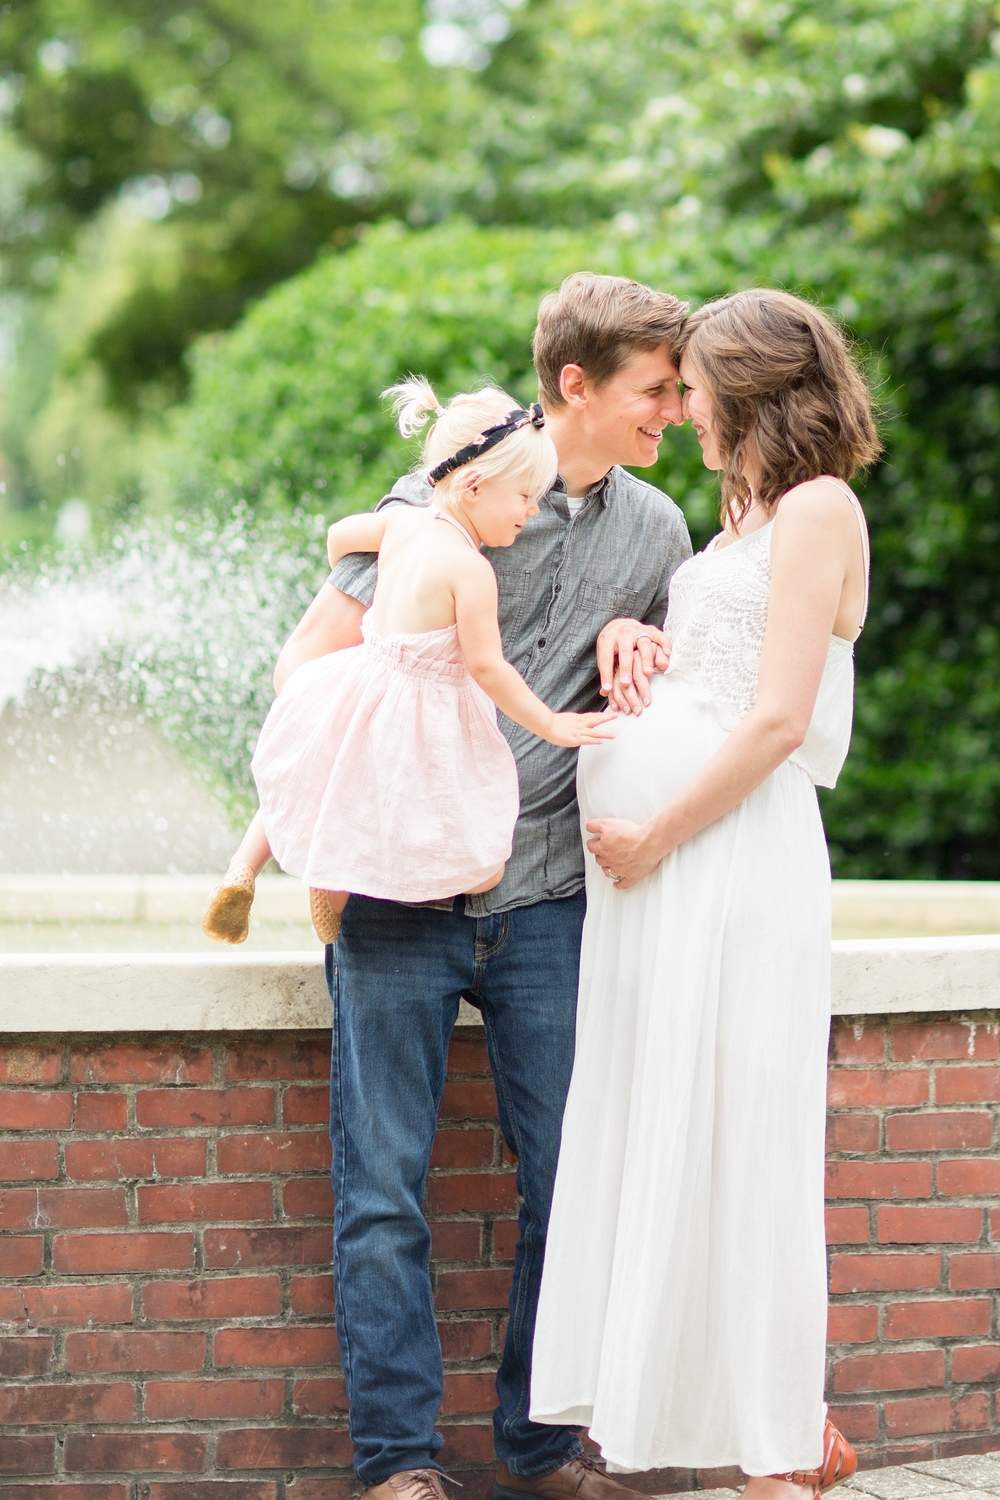 Abell Maternity 2016-12_anna grace photography baltimore maryland family maternity photographer photo.jpg